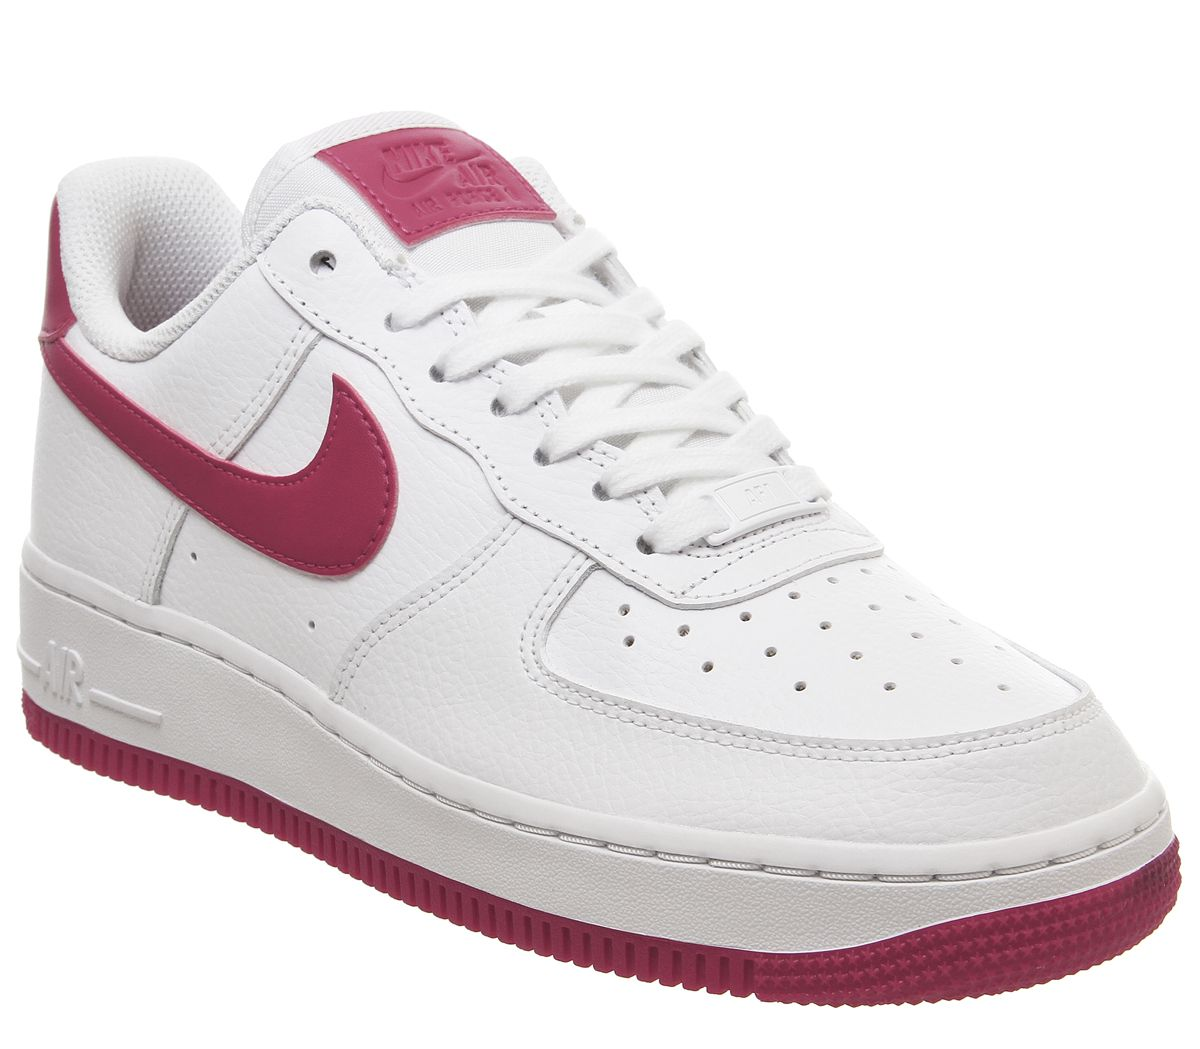 the best new high quality so cheap Nike Air Force 1 07 Trainers White Wild Cherry White Noble ...